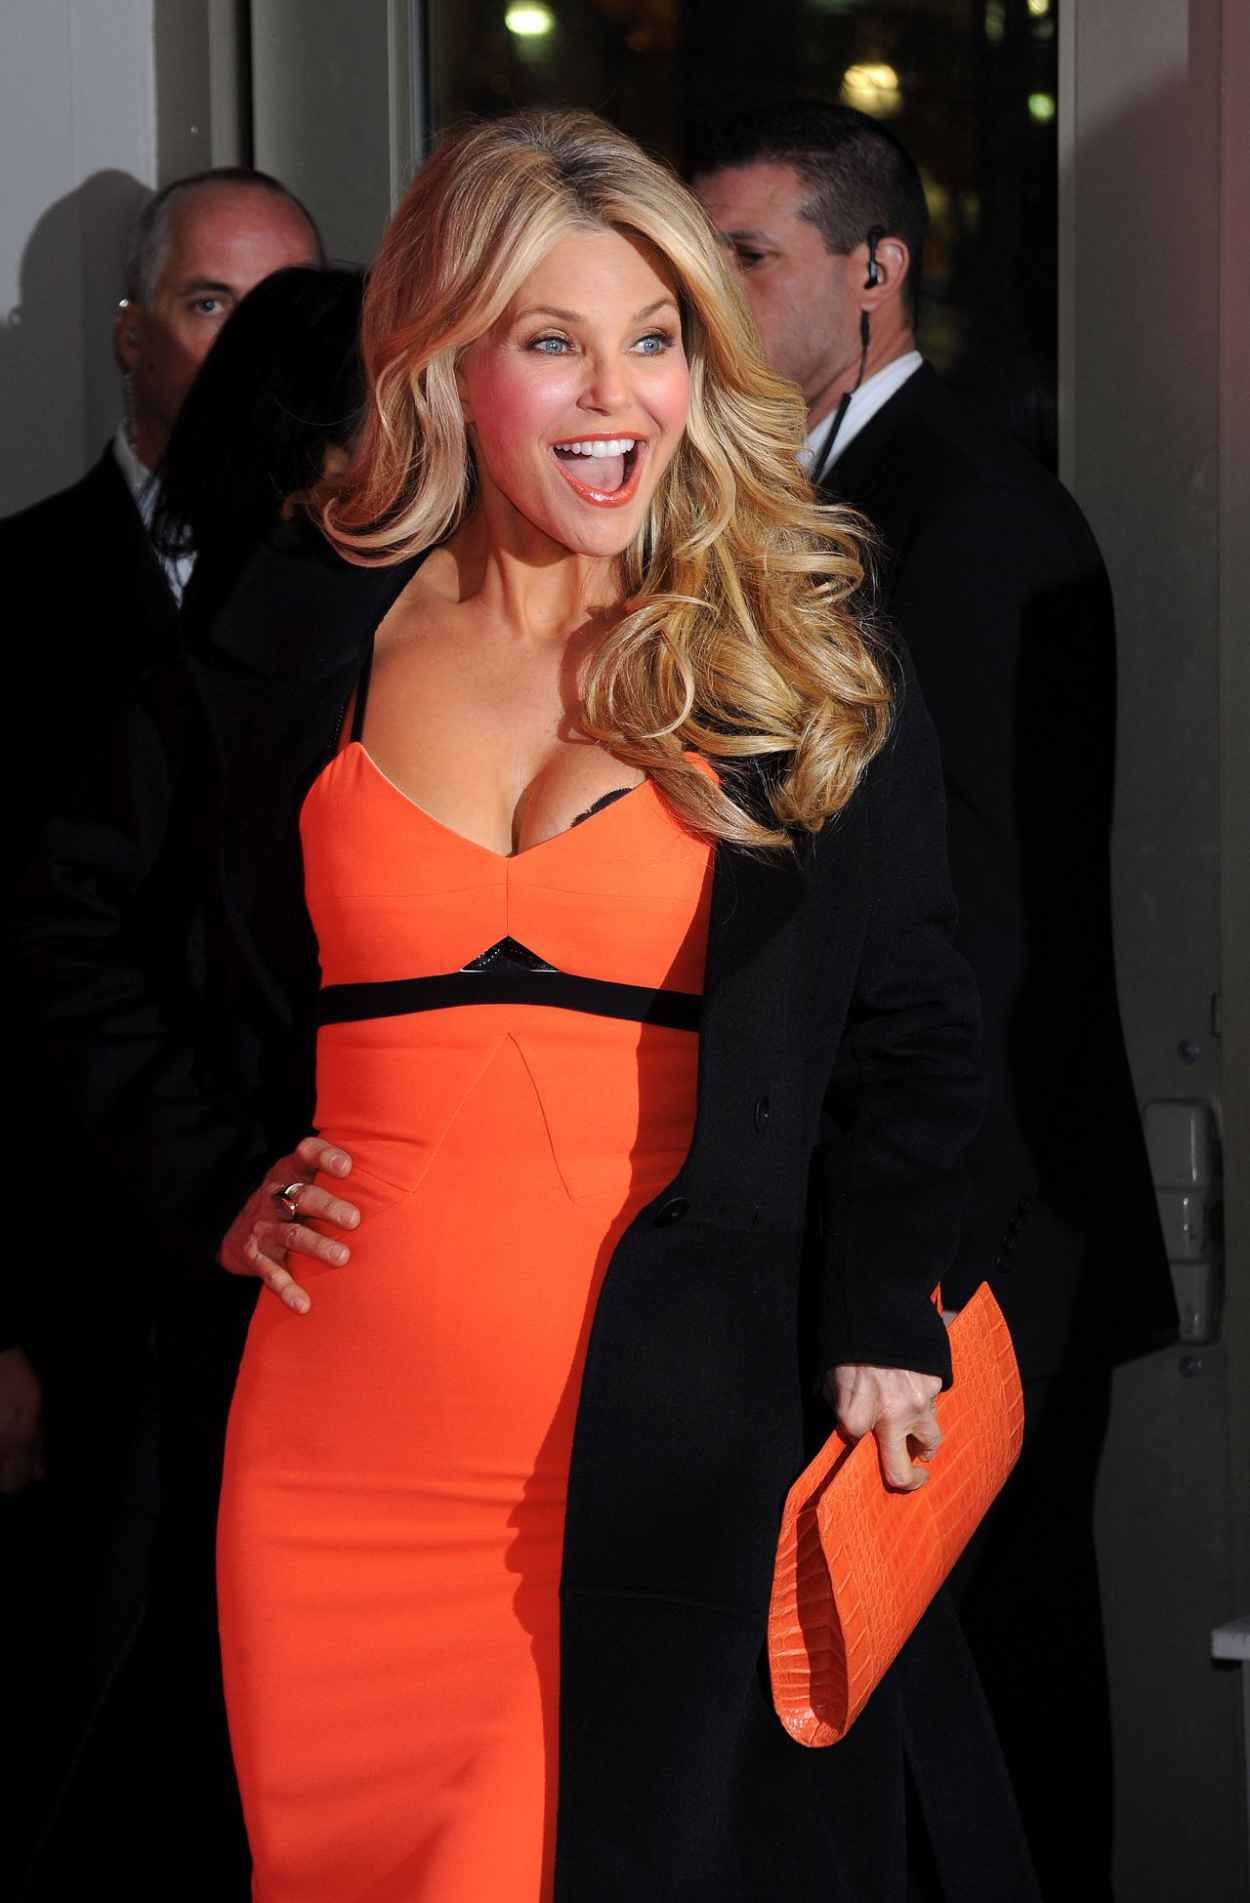 Christie Brinkley SI Swimsuit 50th Anniversary Party February 2015